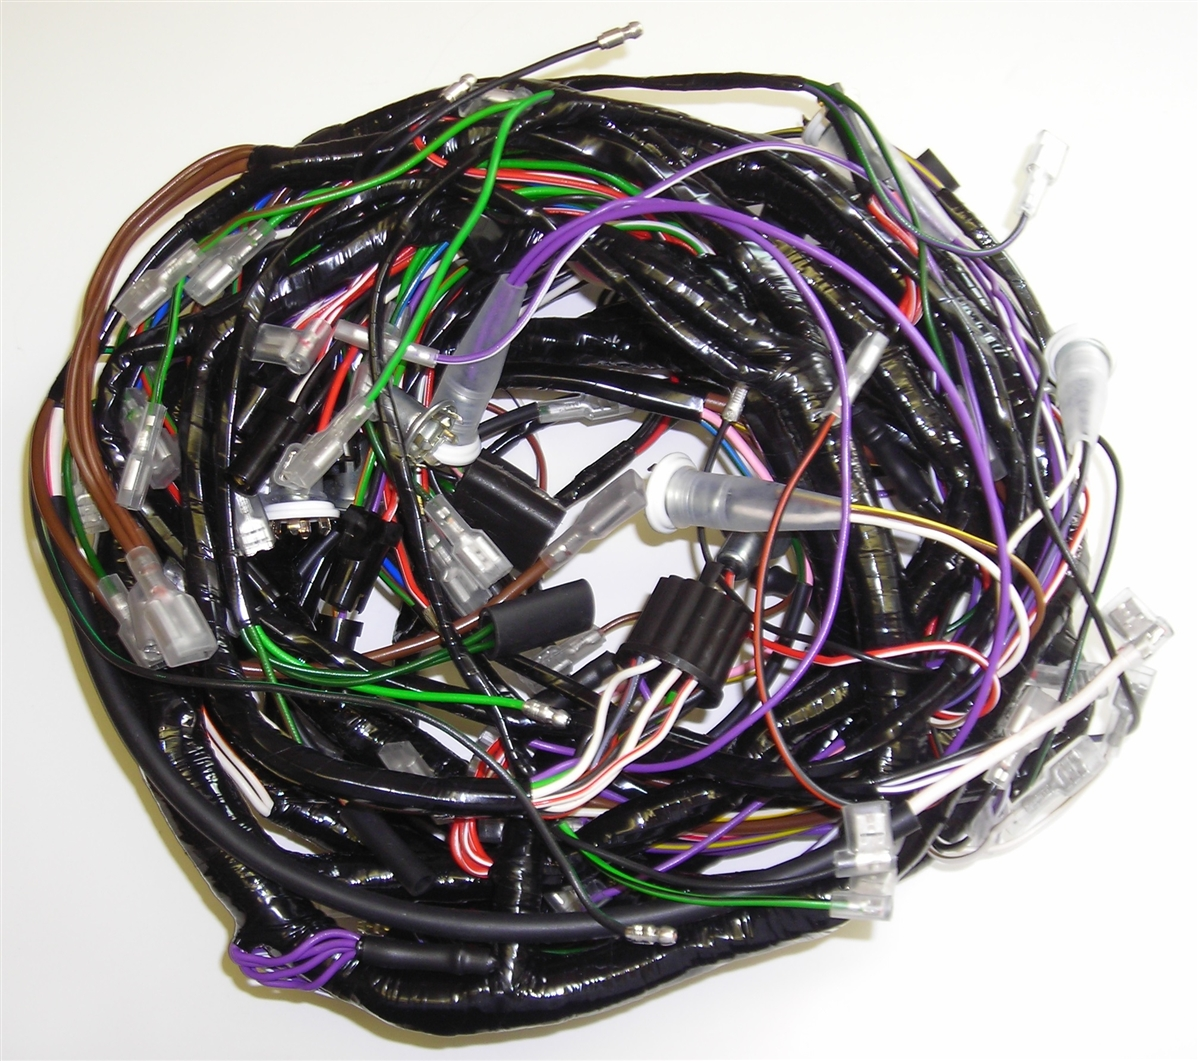 897 2?1371127001 wiring harness triumph tr6 tr6 wiring harness at creativeand.co